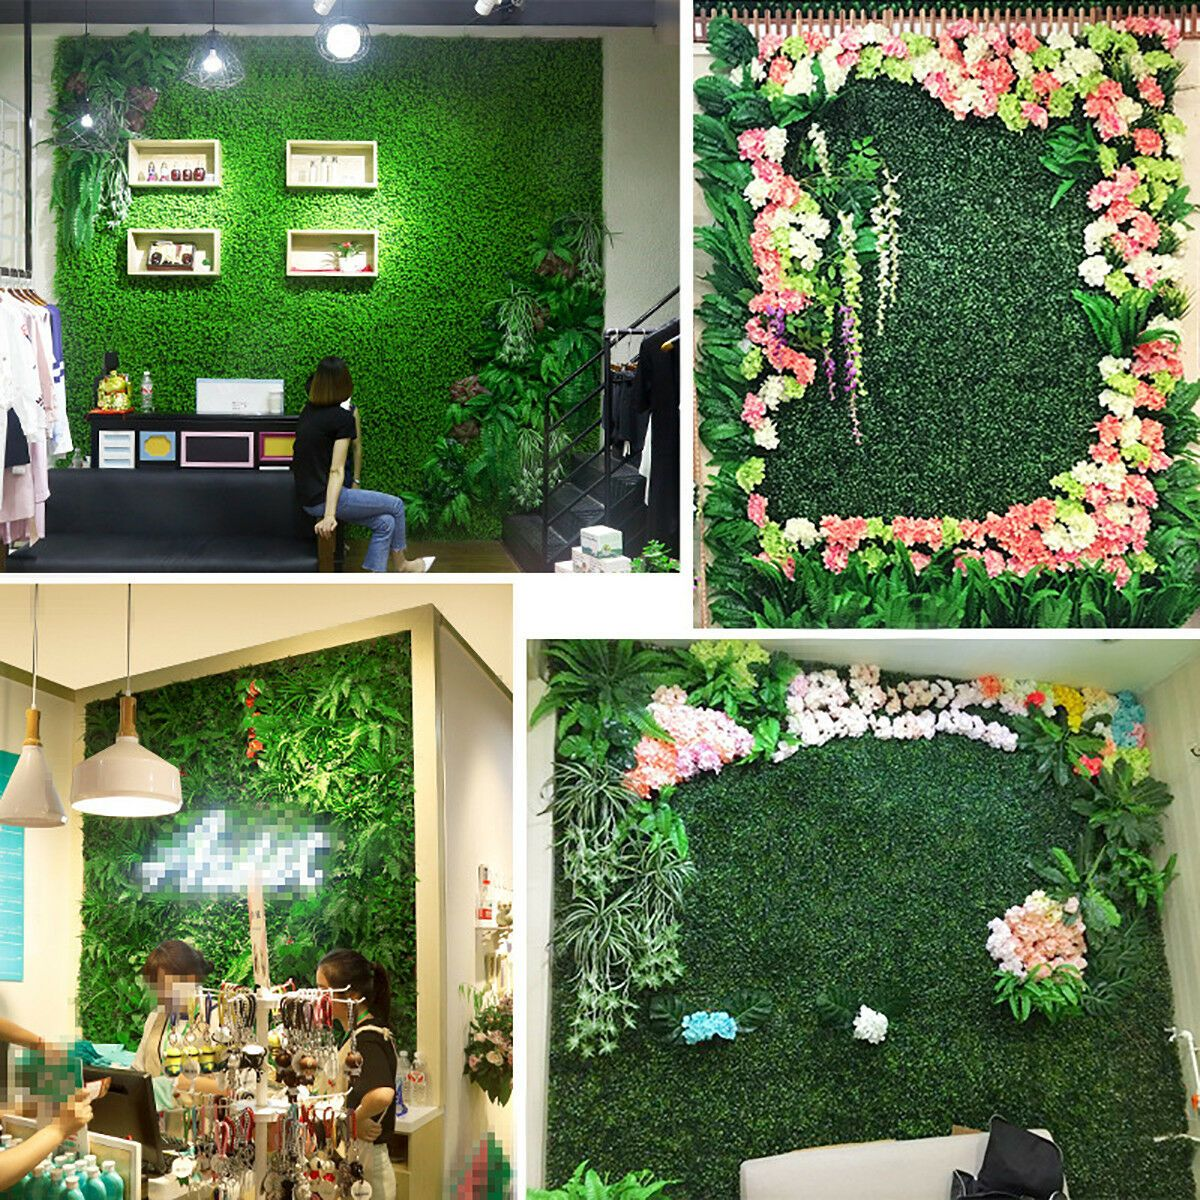 Https Ift Tt 32trrvp Artificial Plants Ideas Of Artificial Plants Artificialplants Plants Artificial Grass Wall Green Wall Plants Artificial Plant Wall